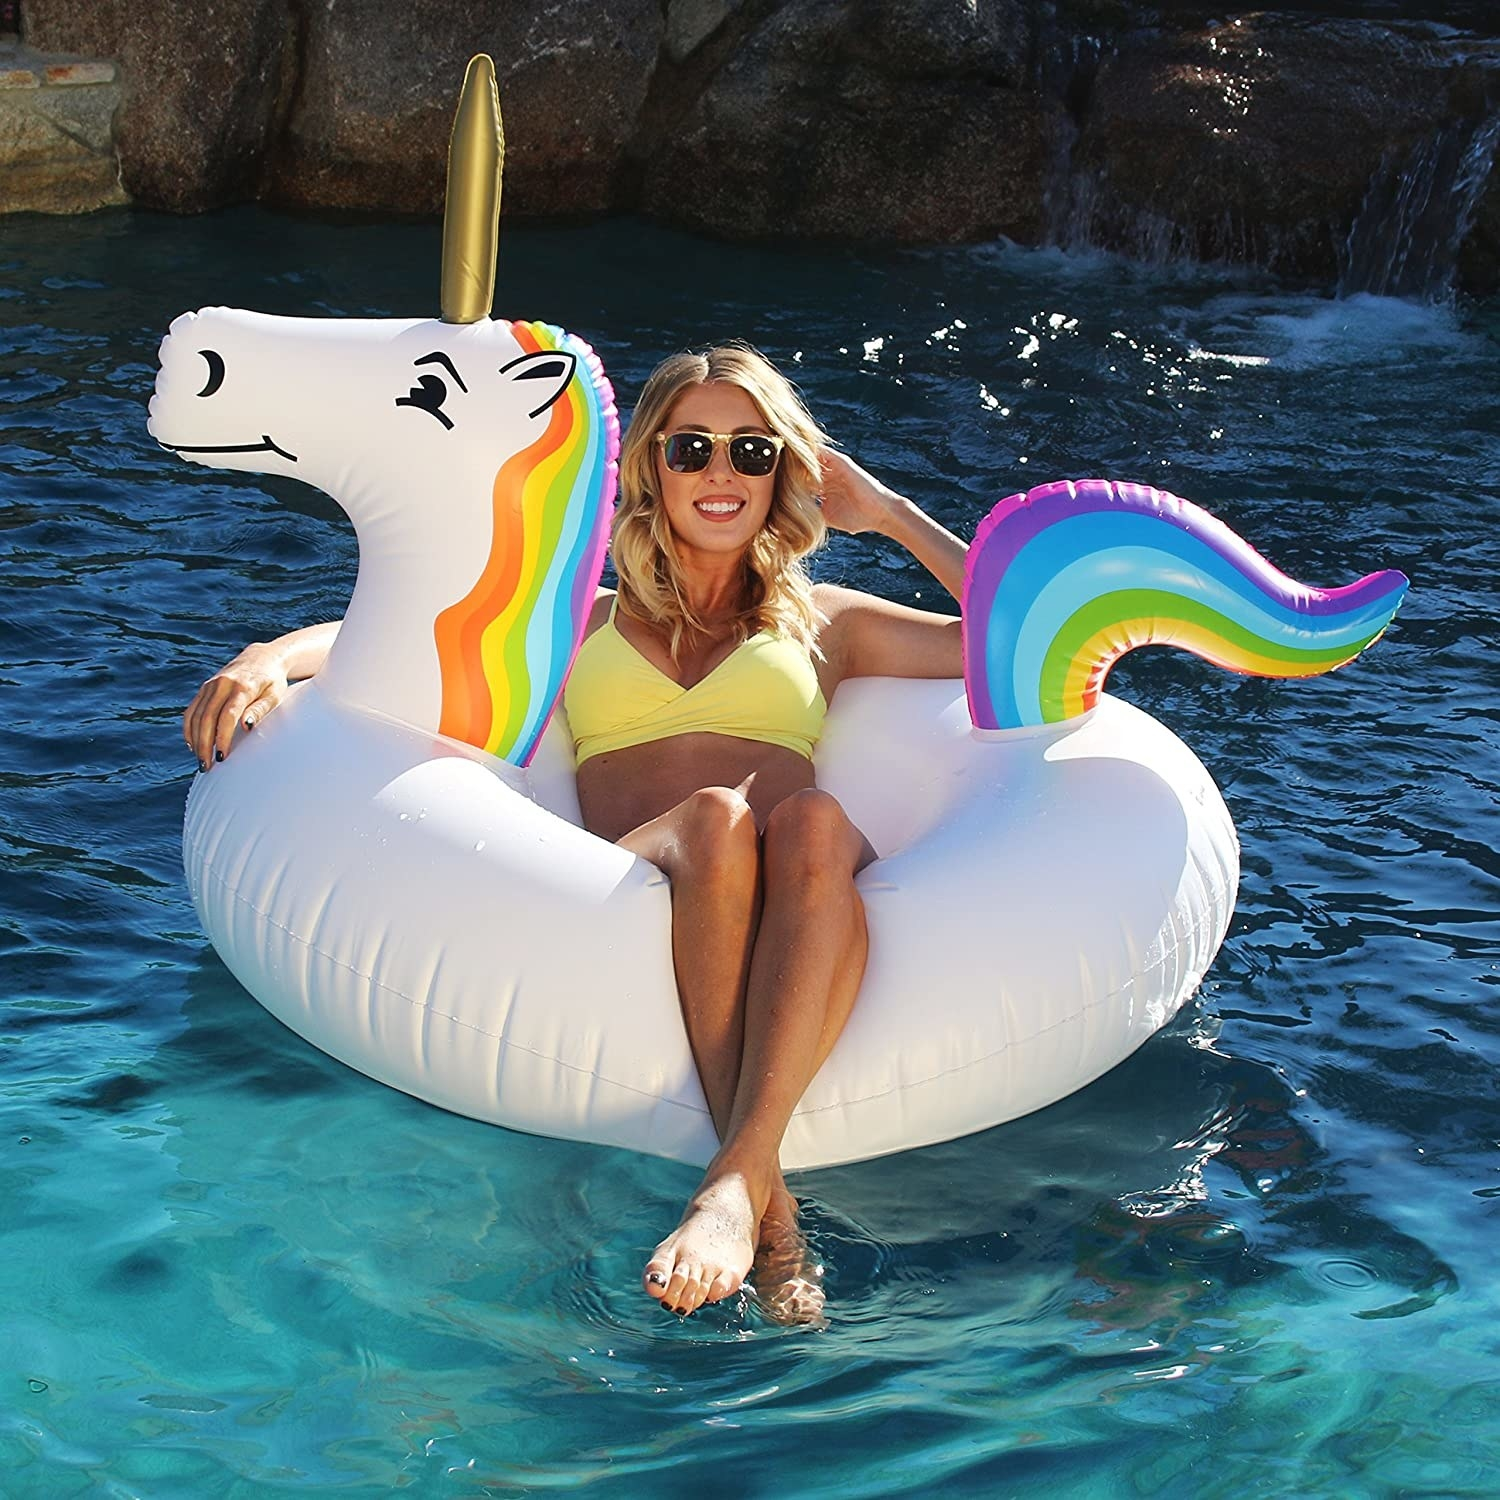 A person sitting on the unicorn float